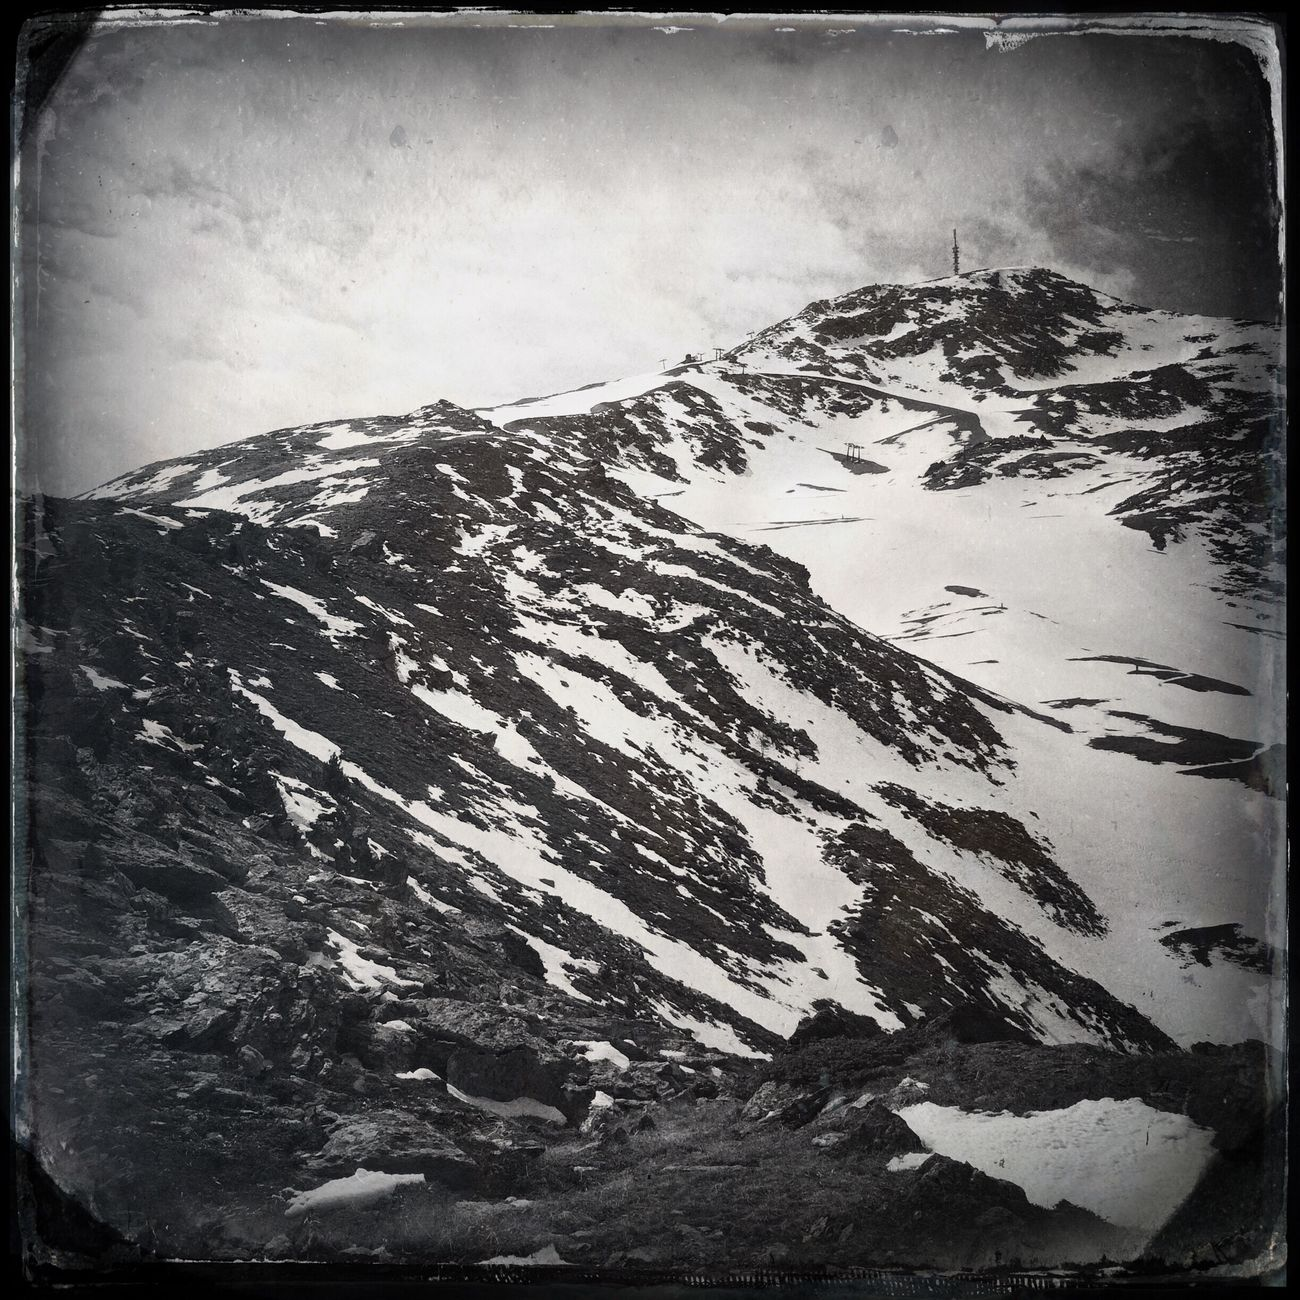 Hiking to the summit Blackandwhite Hipstamatic The_guido